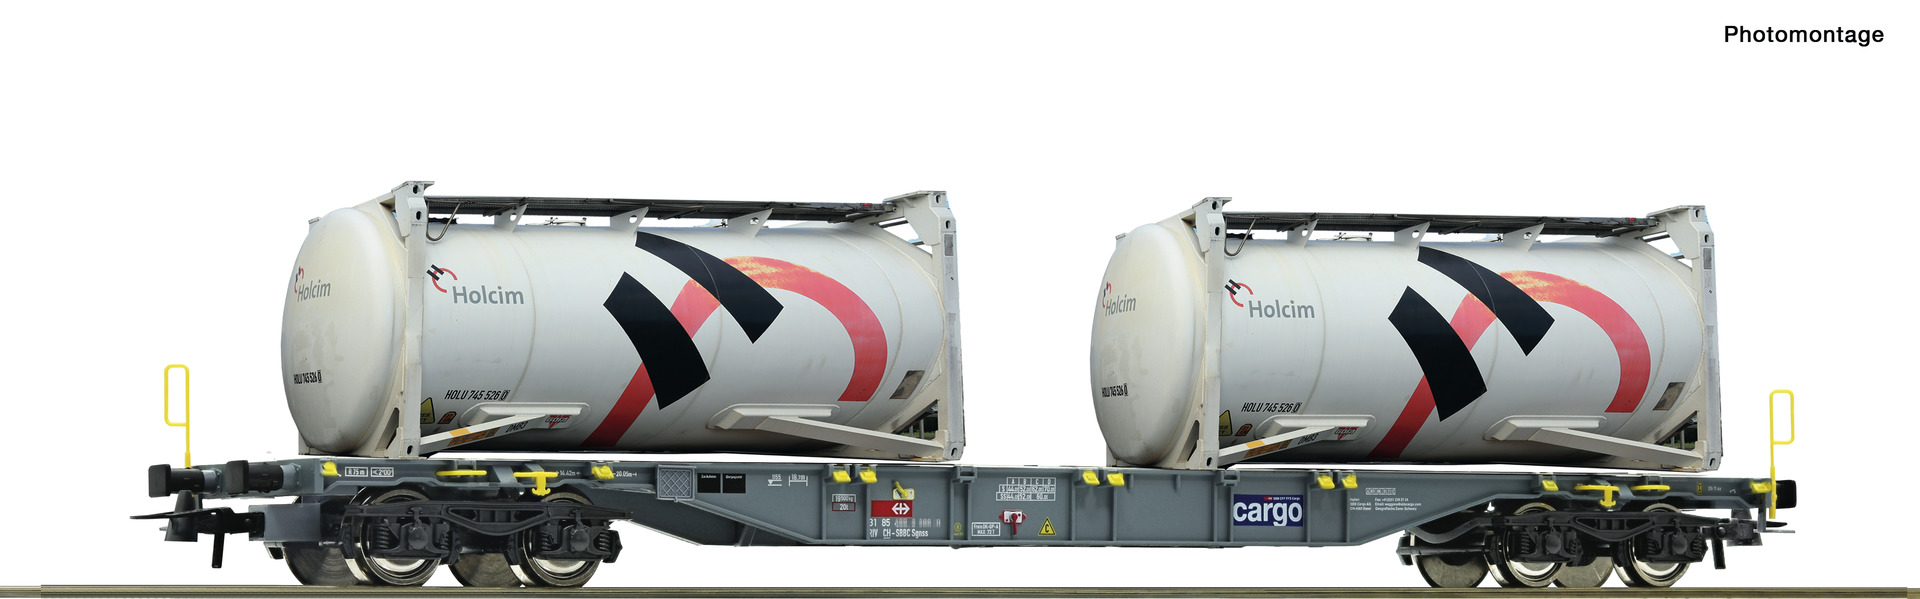 Roco 76943, SBB Containertragwagen, Sgnss, inkl. 2x HOLCIM-Tankcontainer, Ep. VI